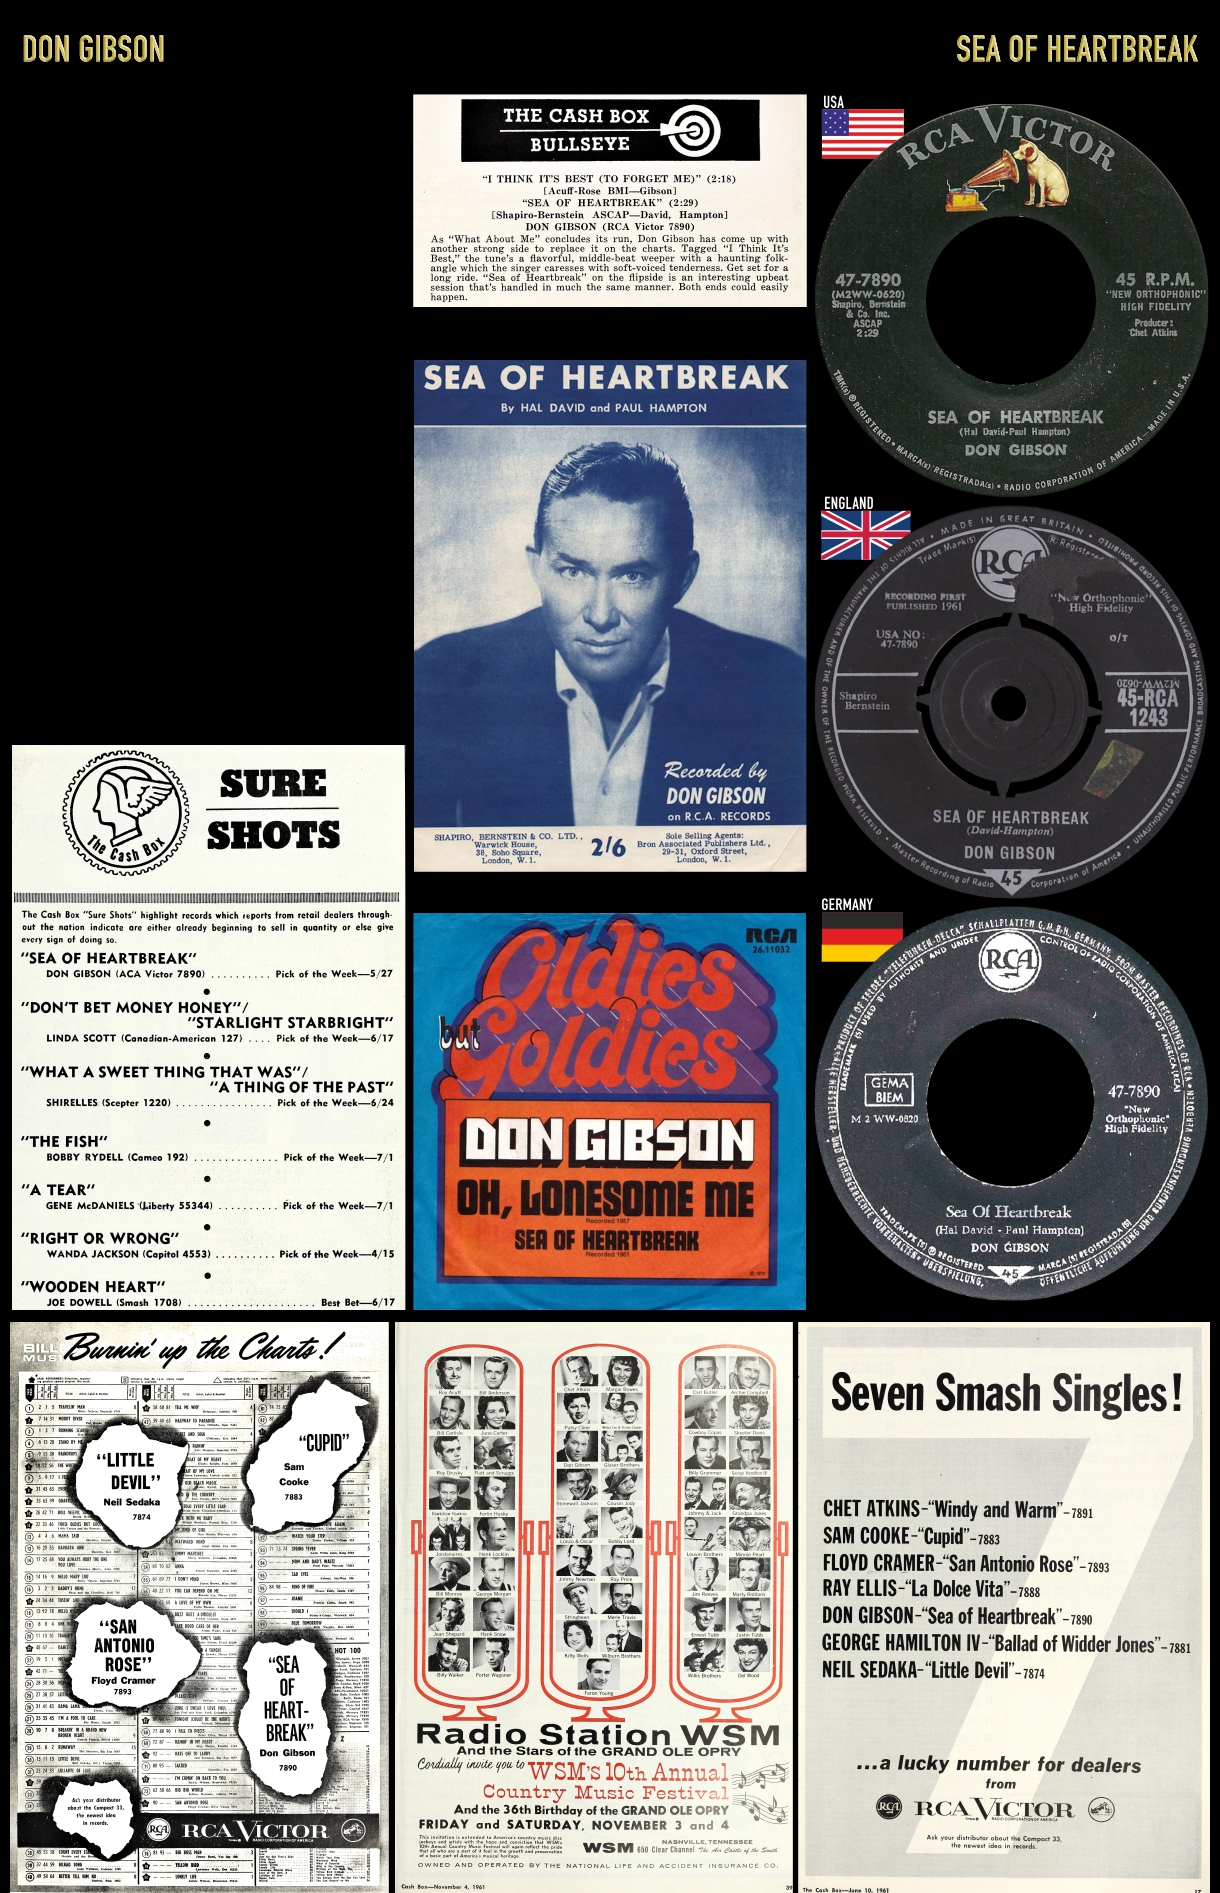 610617_Don Gibson_Sea Of Heartbreak_new